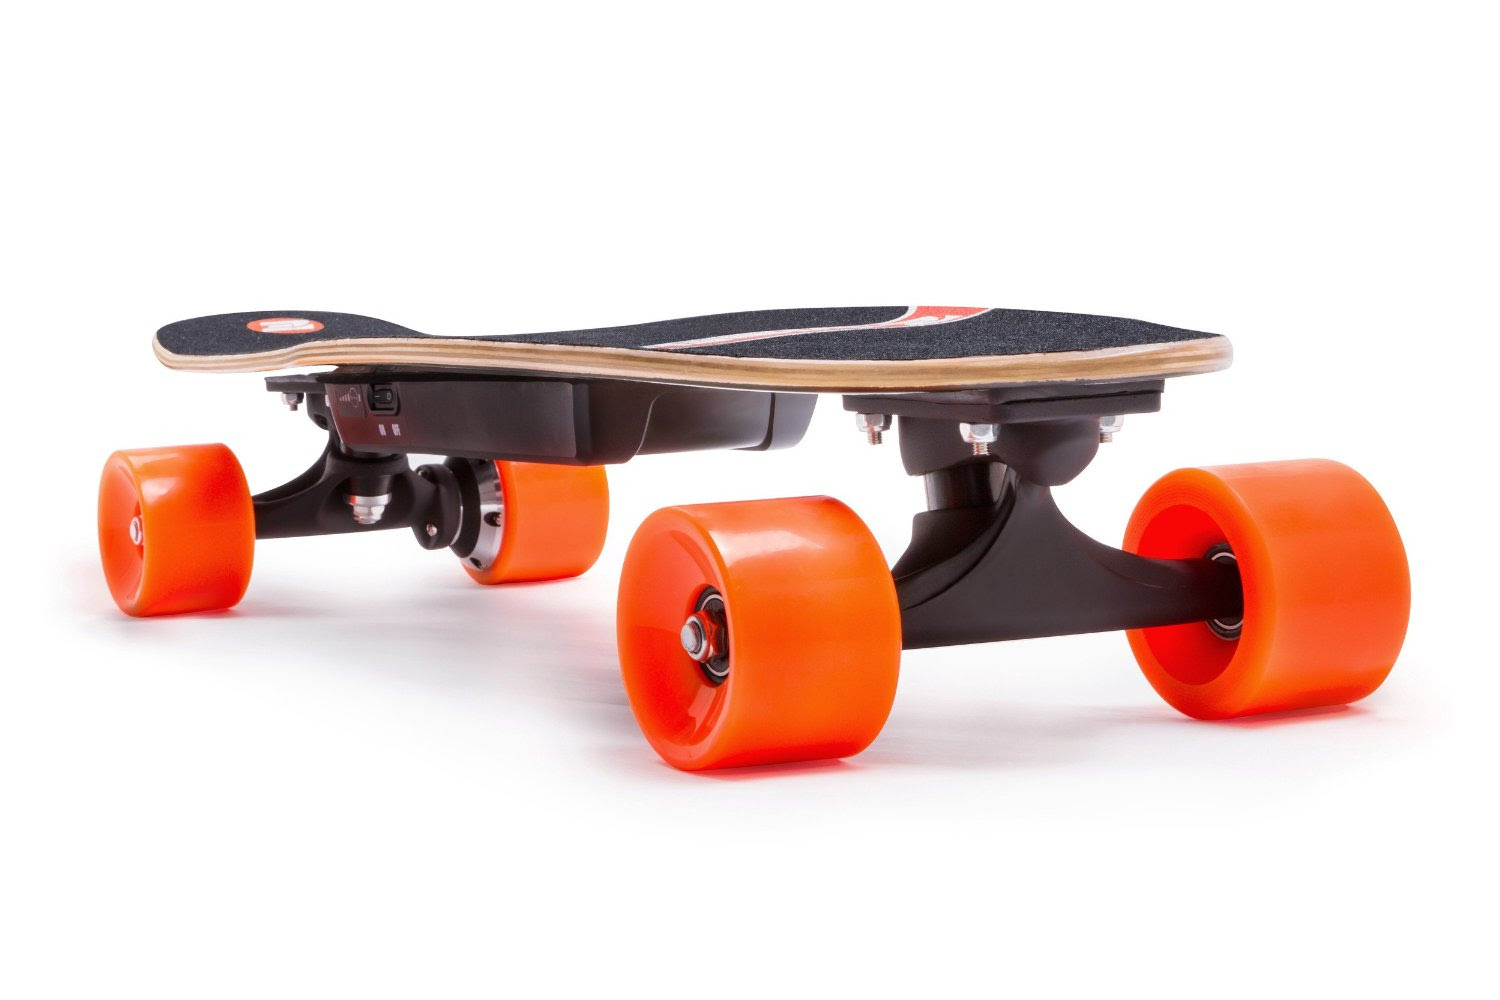 4UTK Remote Control Electric Skateboard Review  Scooter Smarter